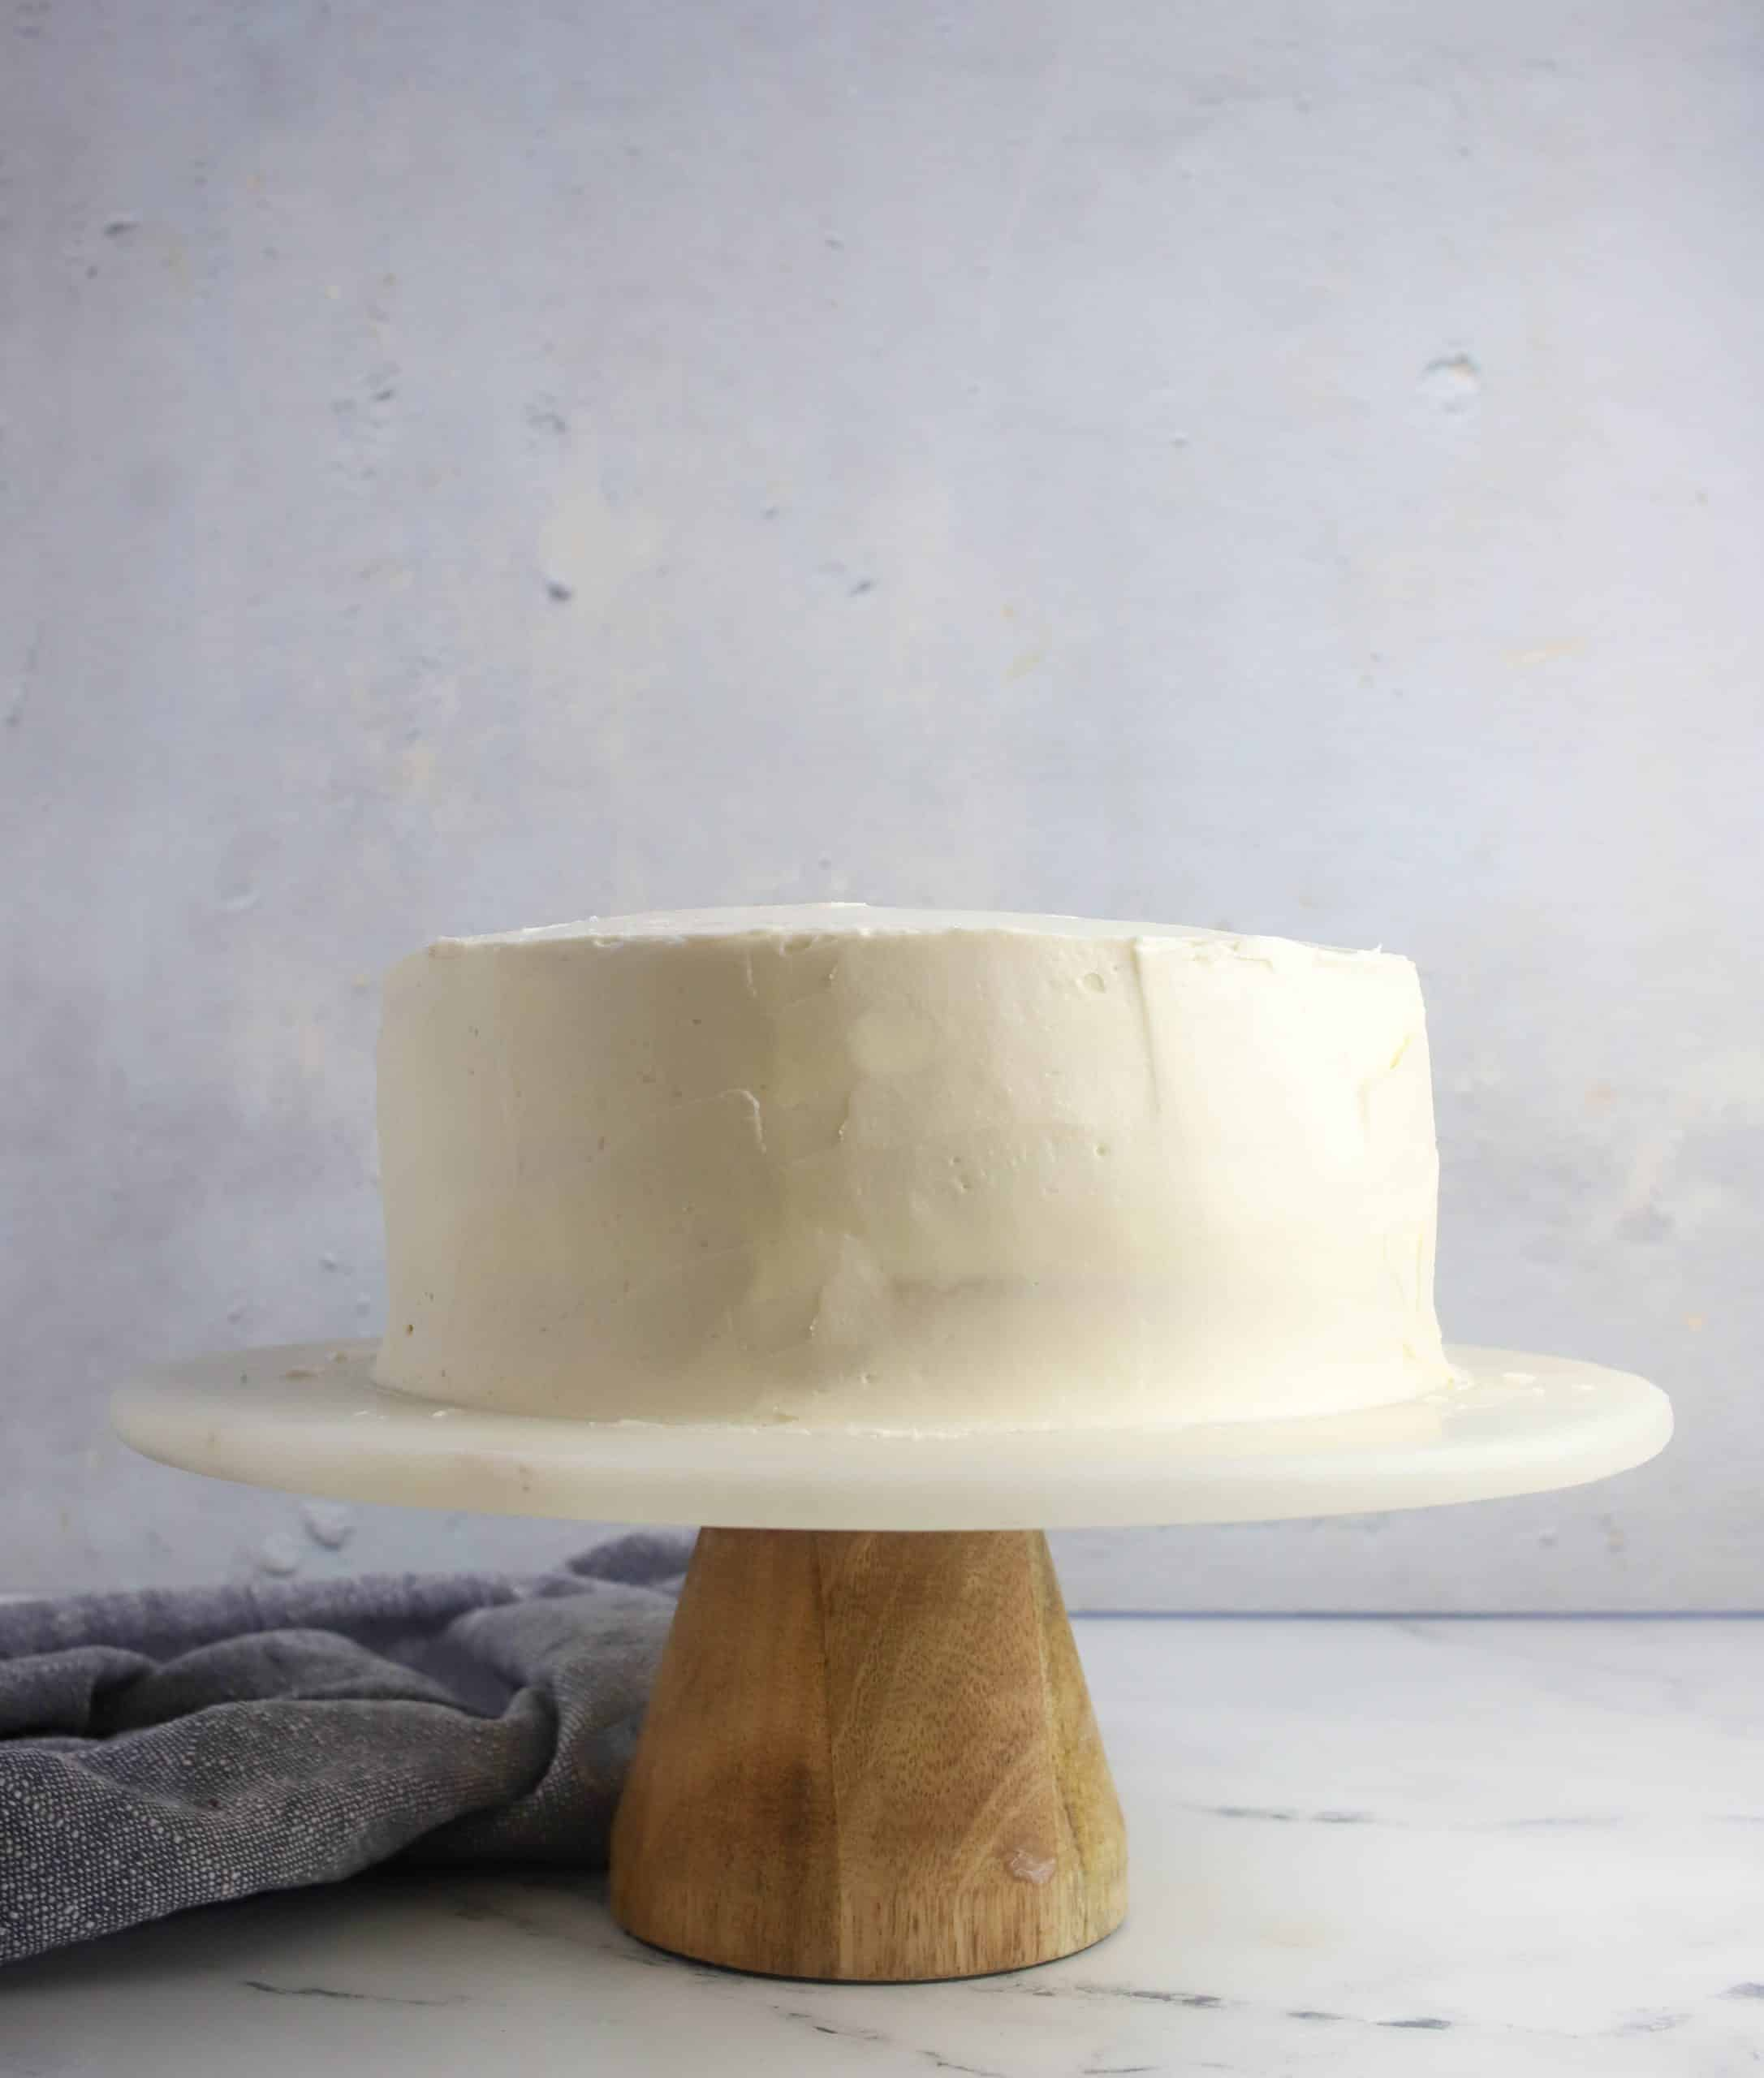 cake frosted smooth on a cake stand